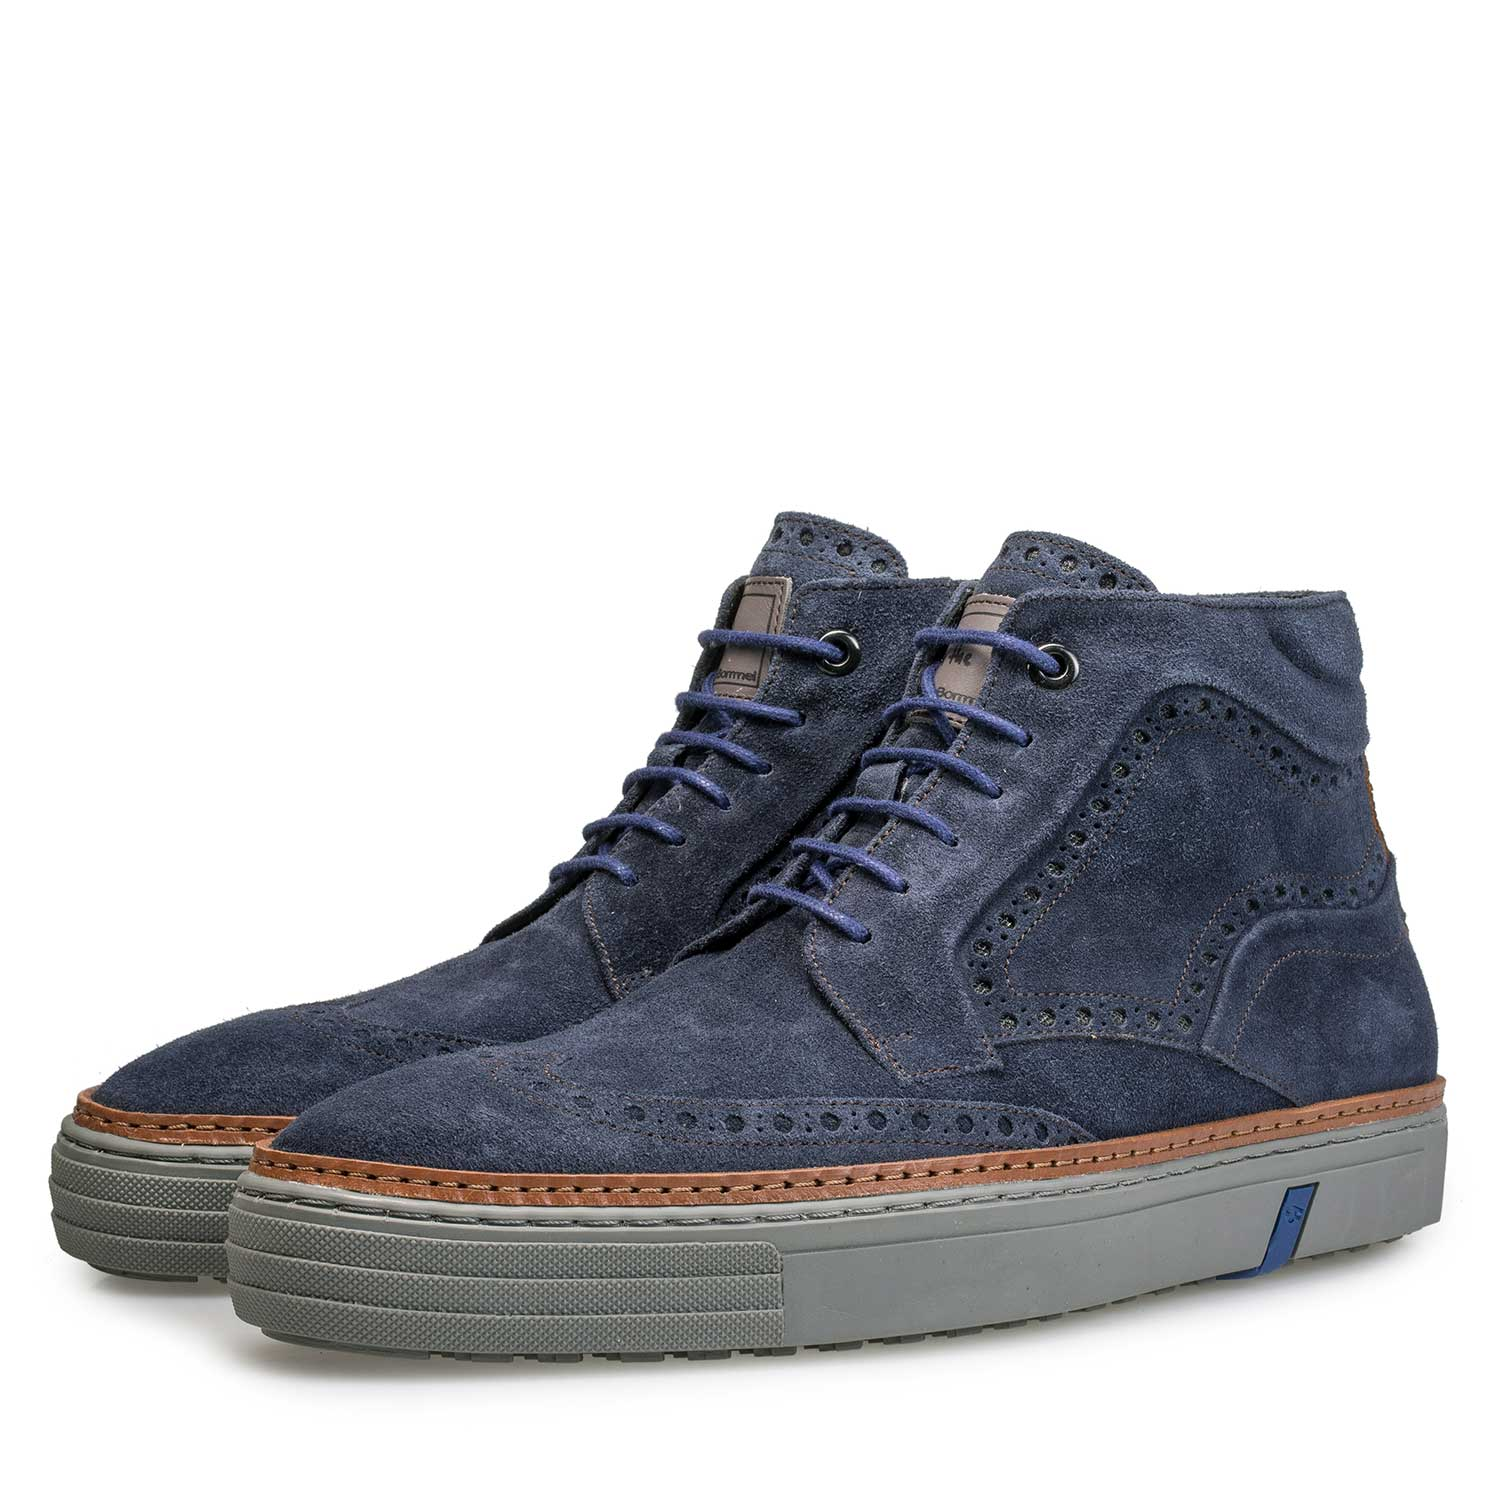 10080/01 - Blue suede leather brogue sneaker